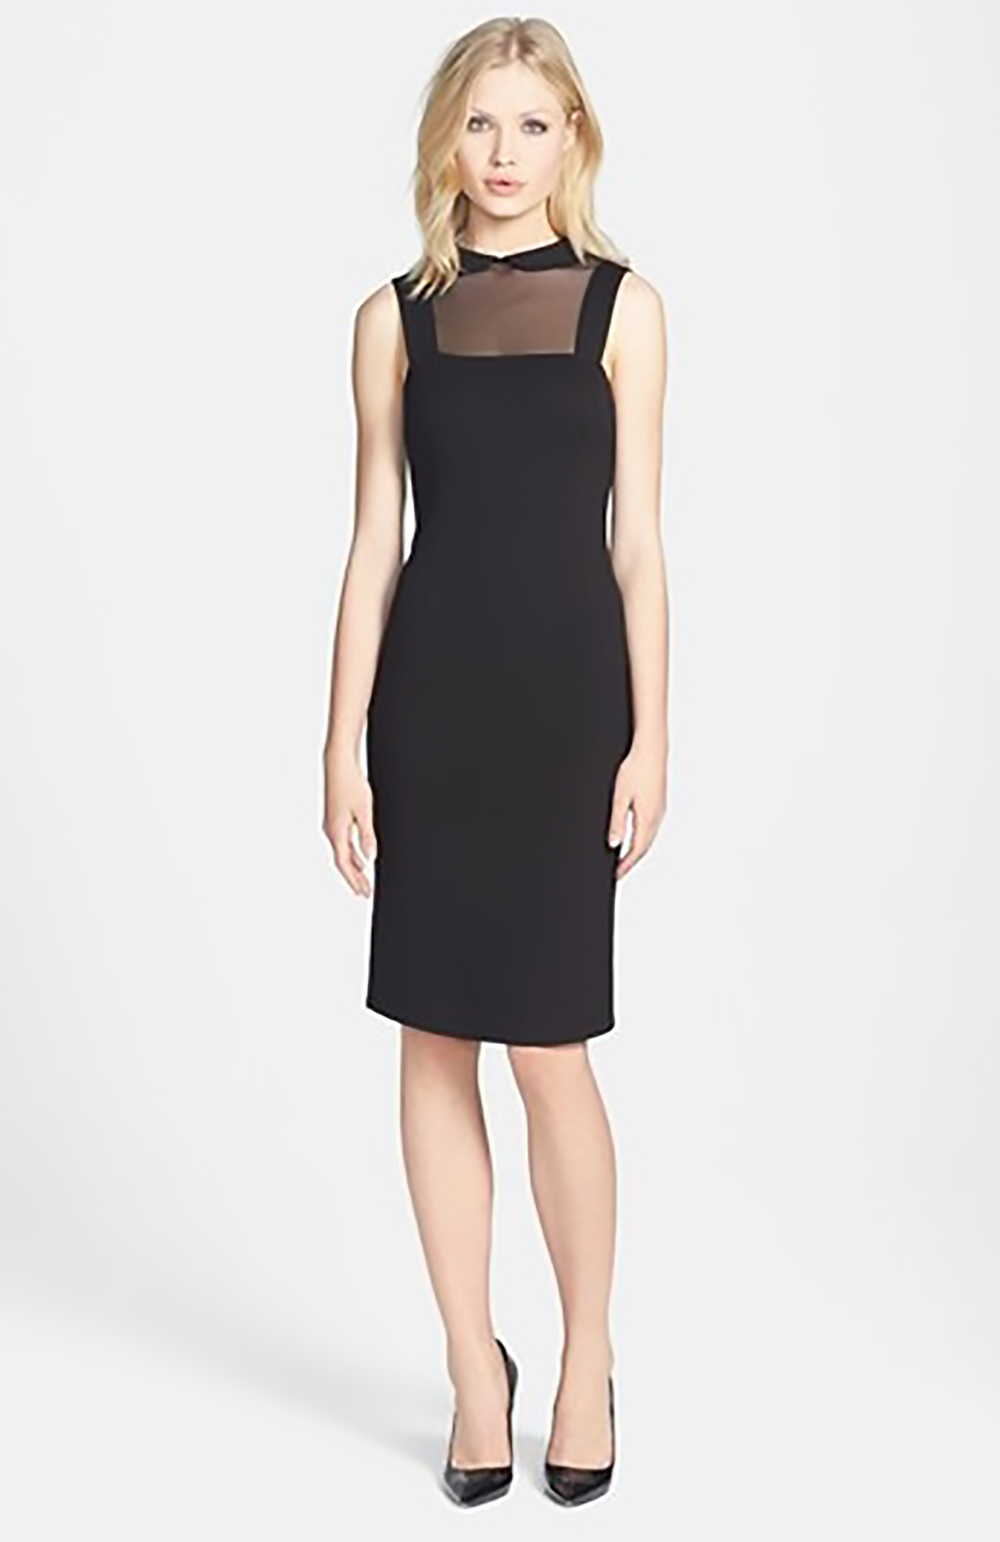 nordstrom BB Dakota Rhyannon sheer yoke ponte sheath dress 1500.jpg